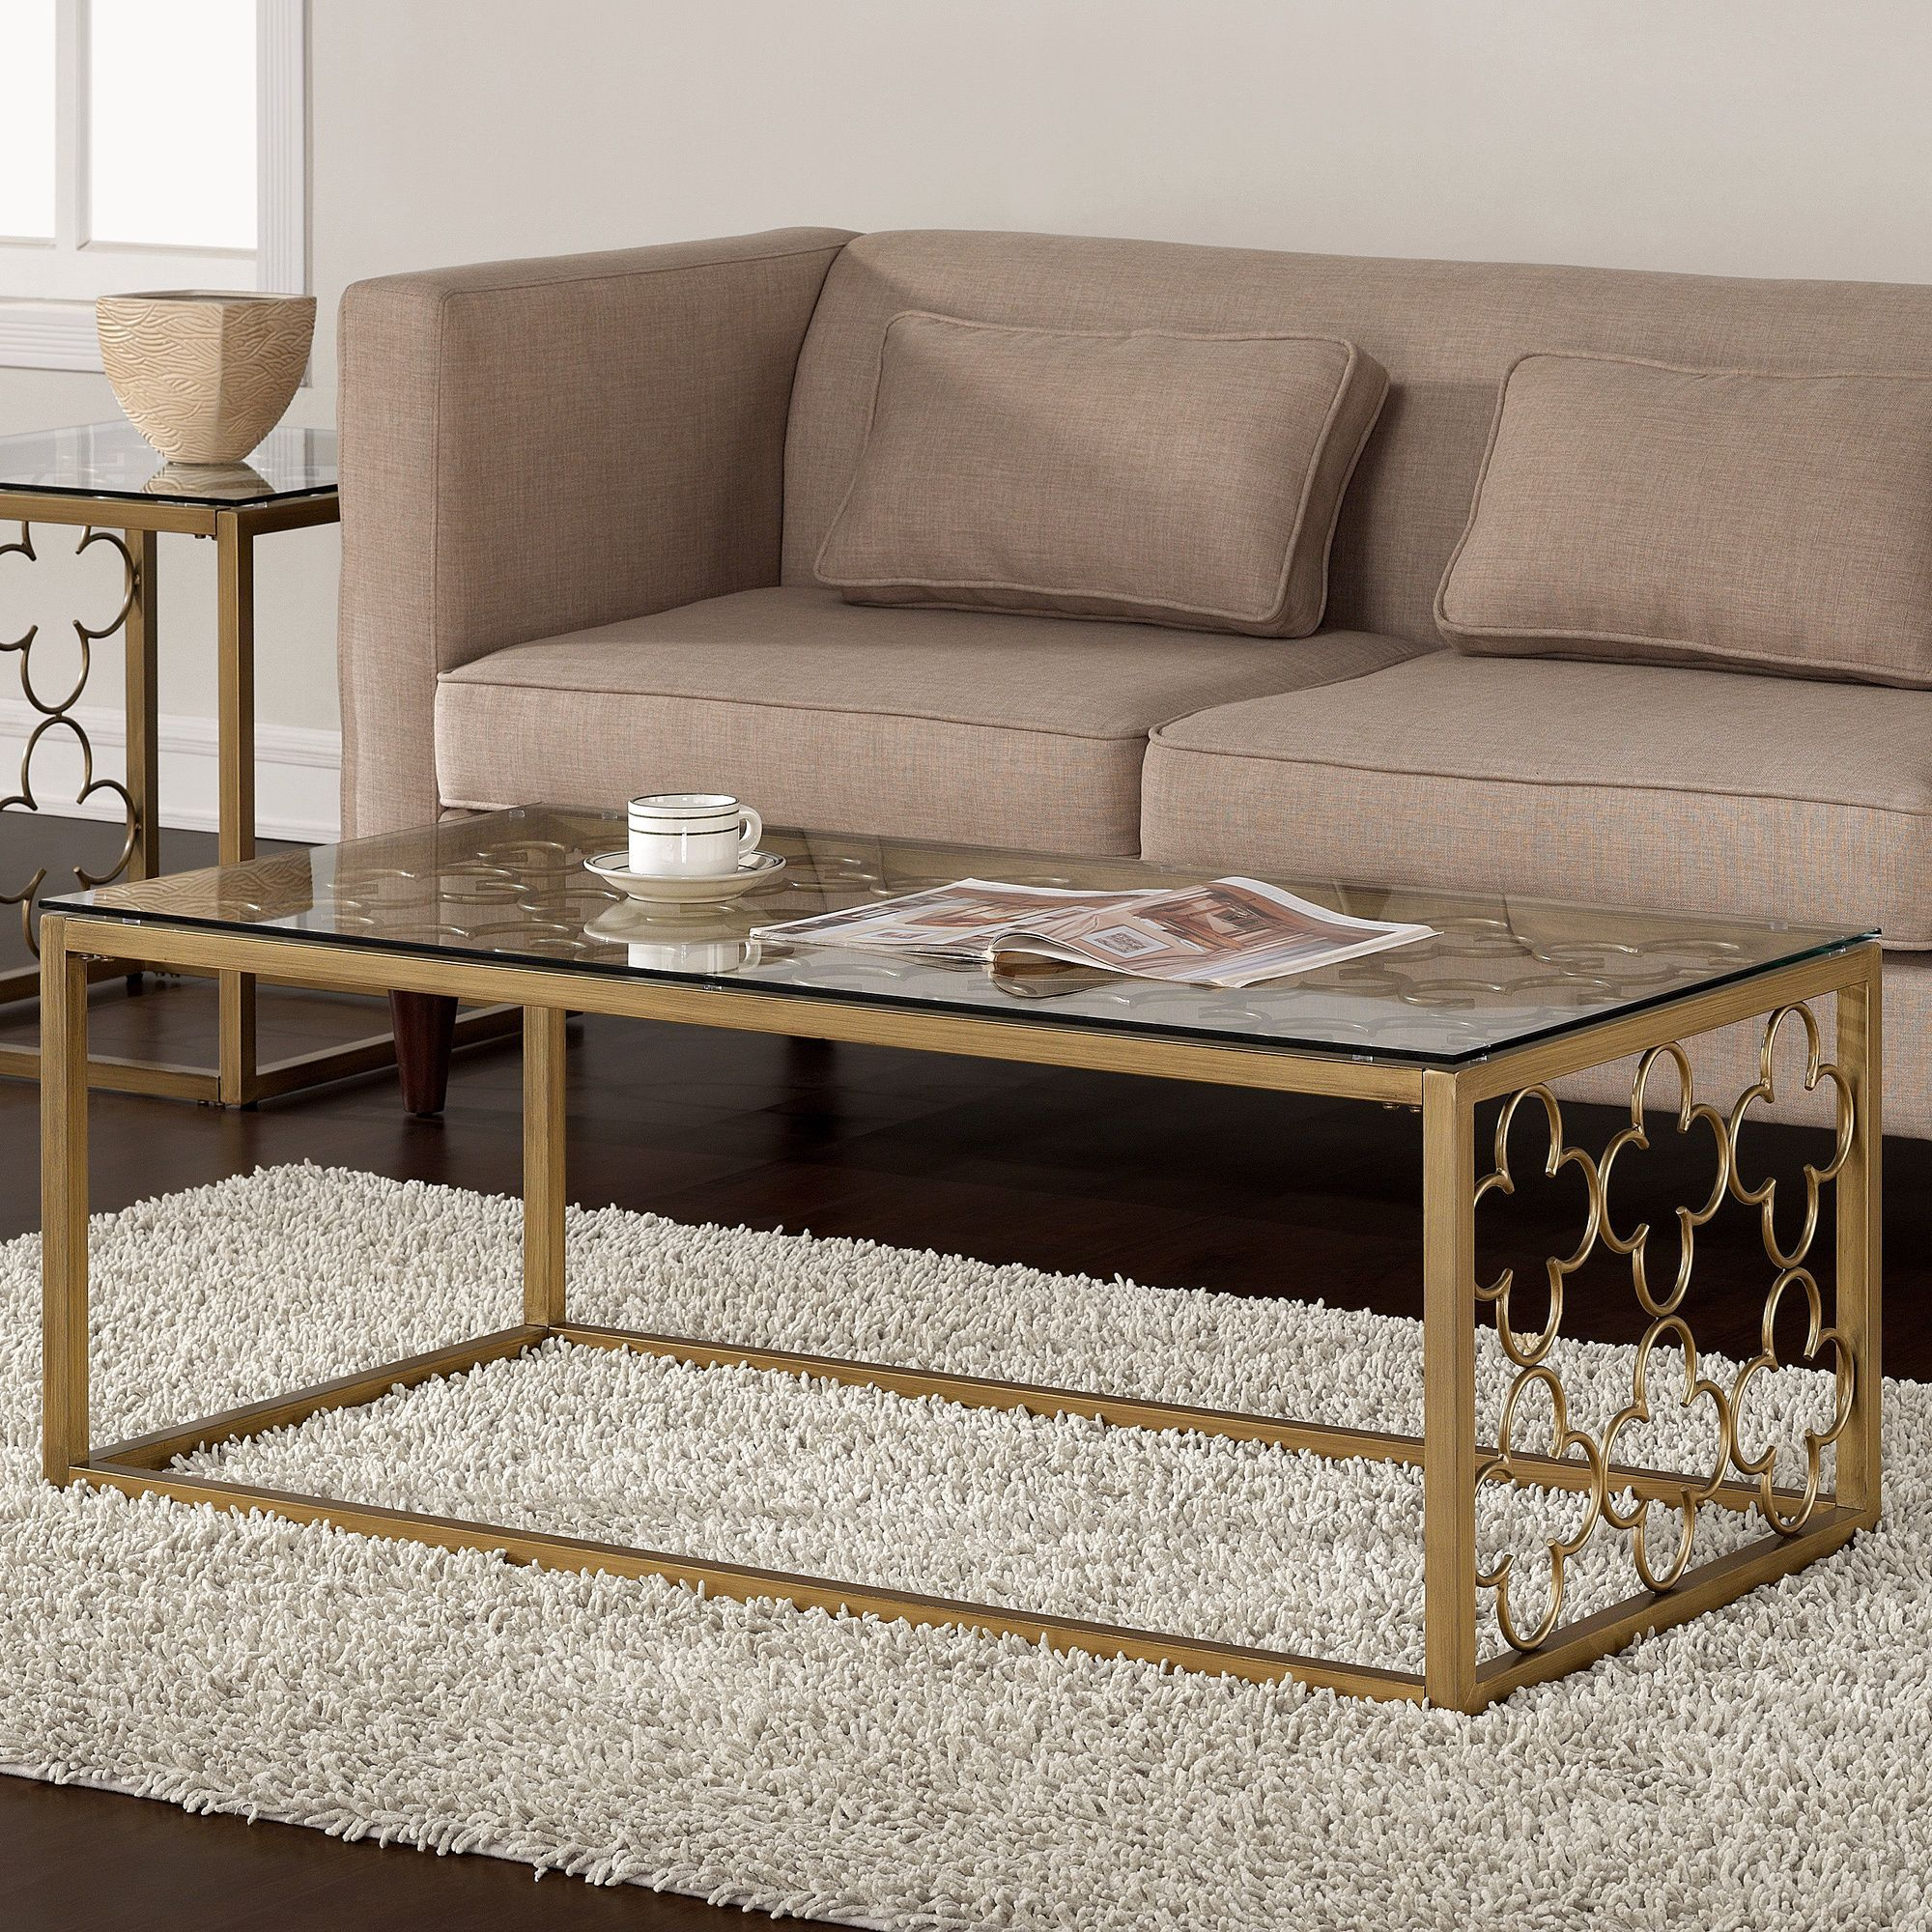 Quatrefoil goldtone metal and glass coffee table by i love living sofa end tables beautiful Gold metal coffee table